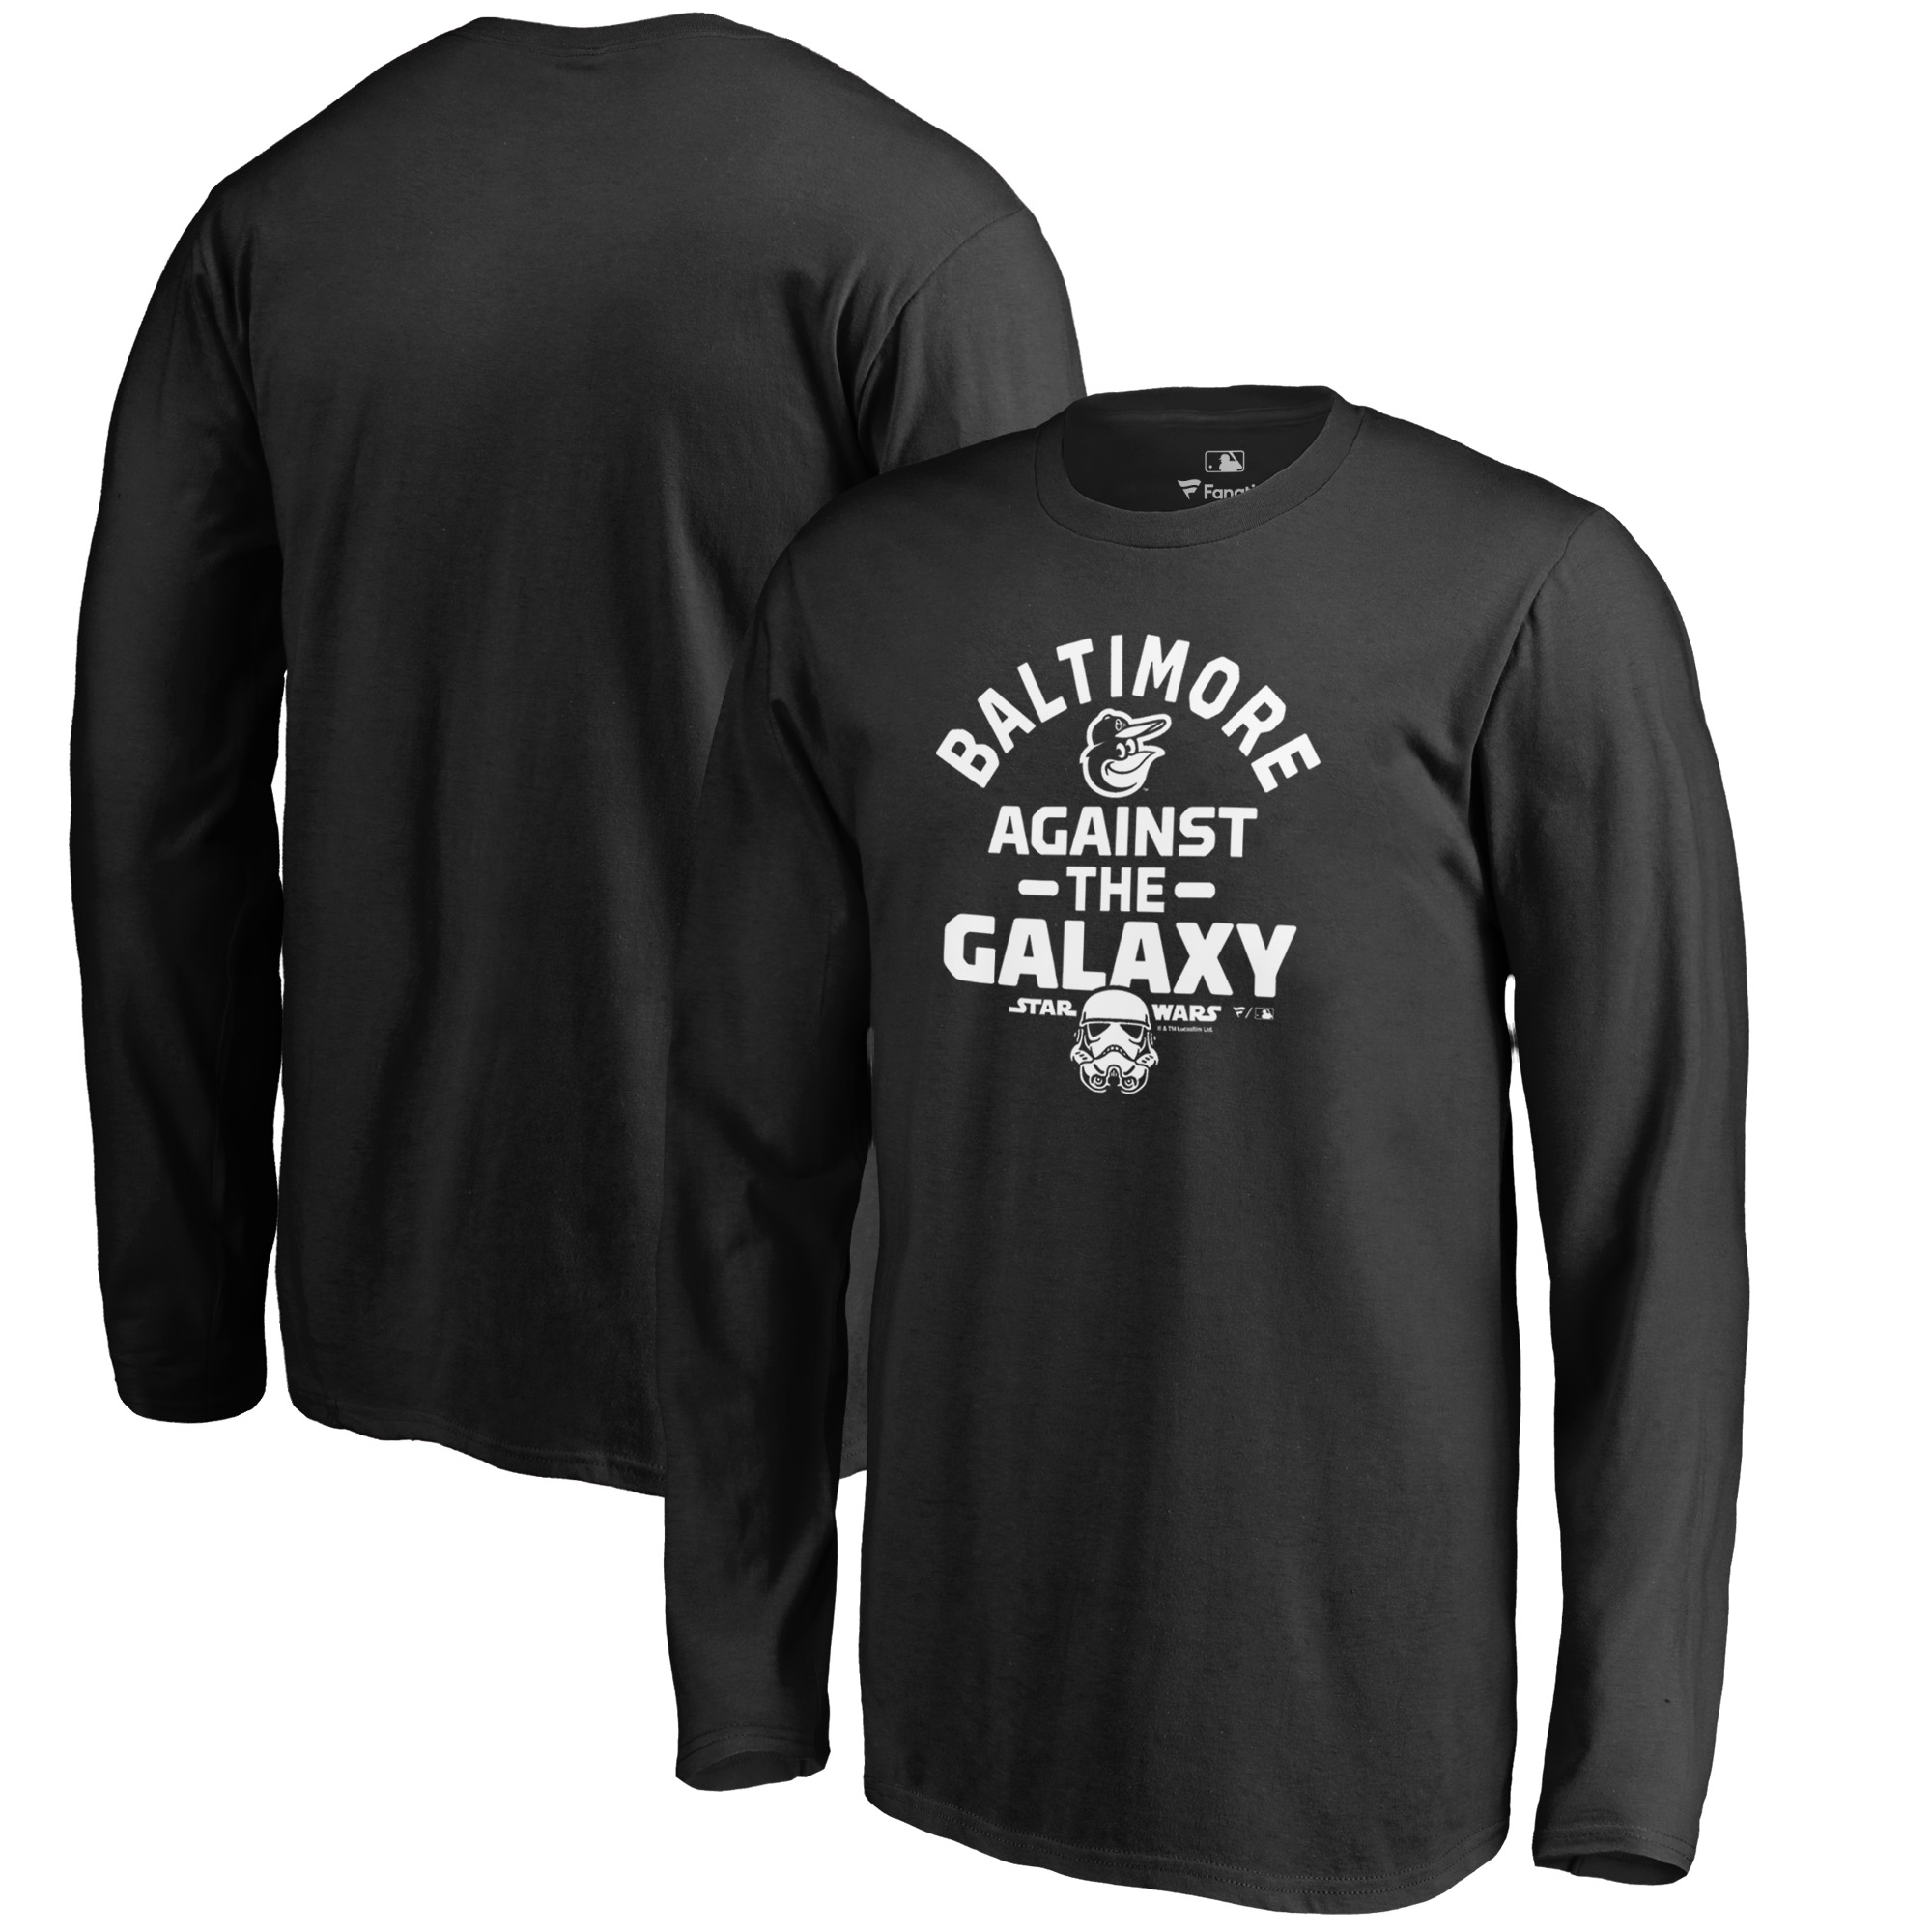 Baltimore Orioles Fanatics Branded Youth MLB Star Wars Against The Galaxy Long Sleeve T-Shirt - Black